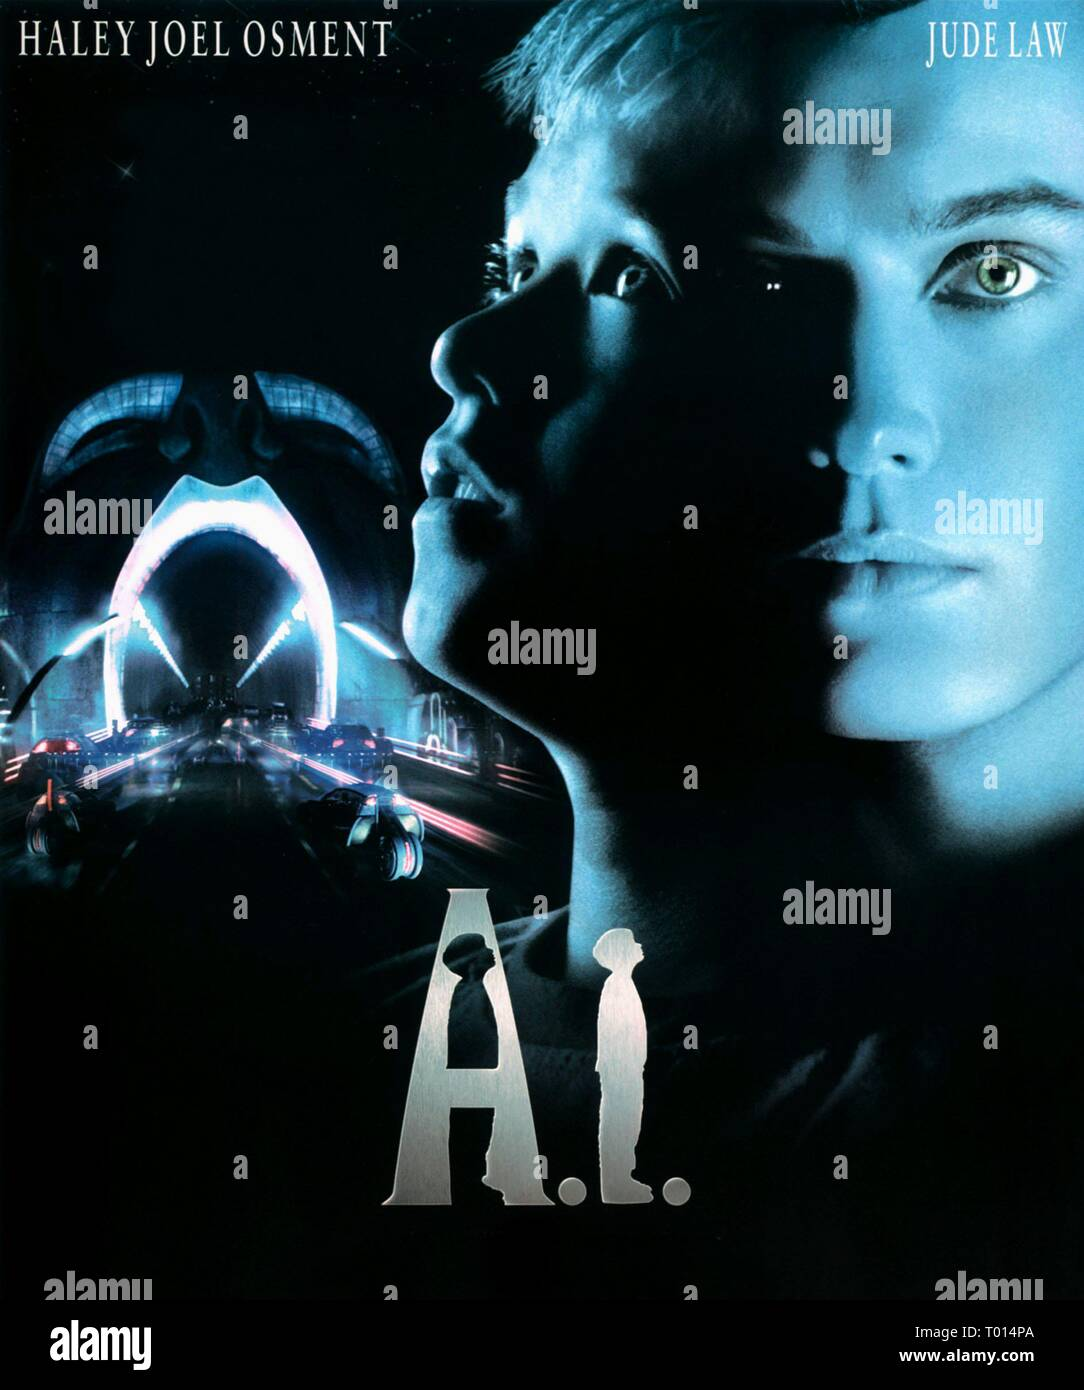 Film Poster A I Artificial Intelligence 2001 Stock Photo Alamy